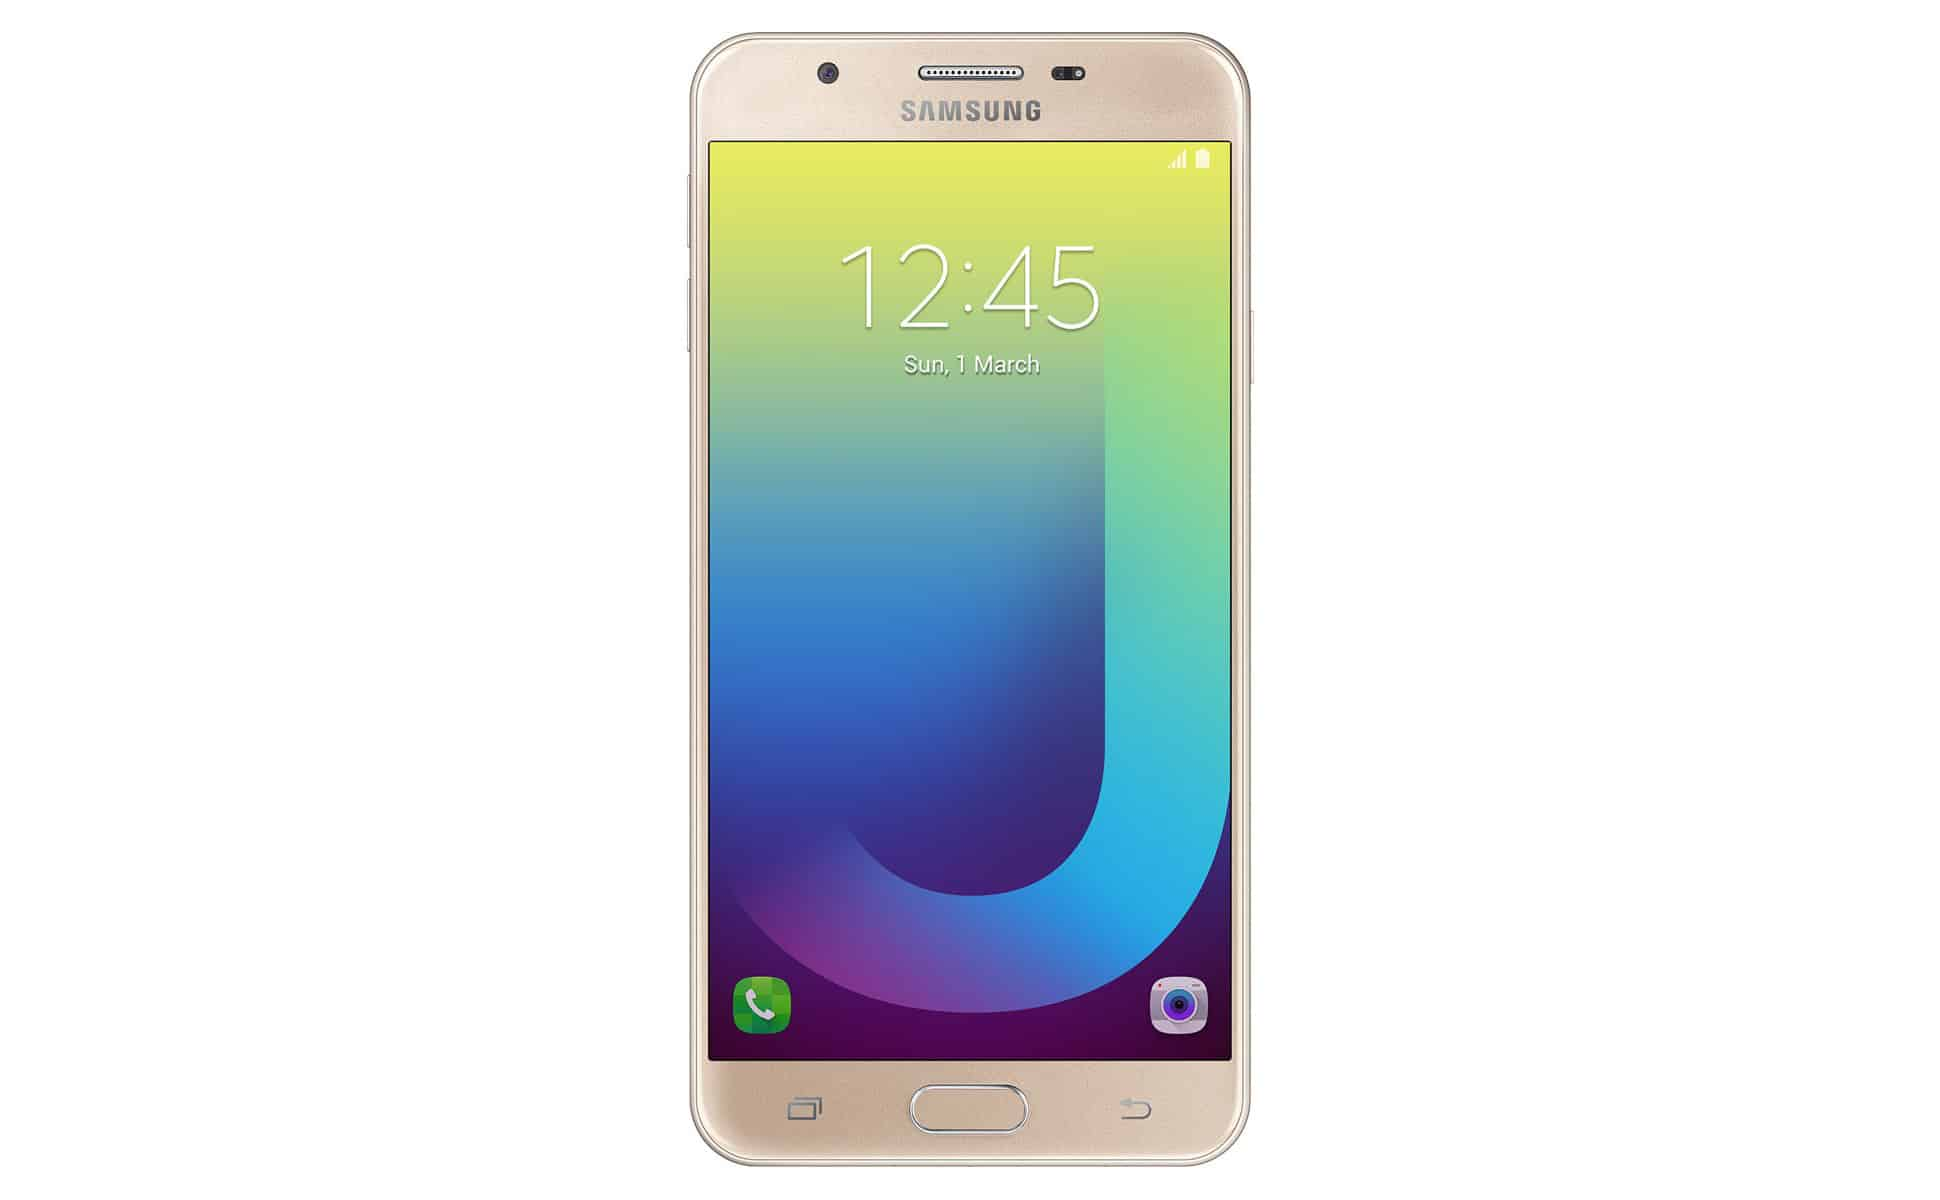 Samsung India Prematurely Reveals Galaxy J7 Prime 2 Itbnews Sm G610f